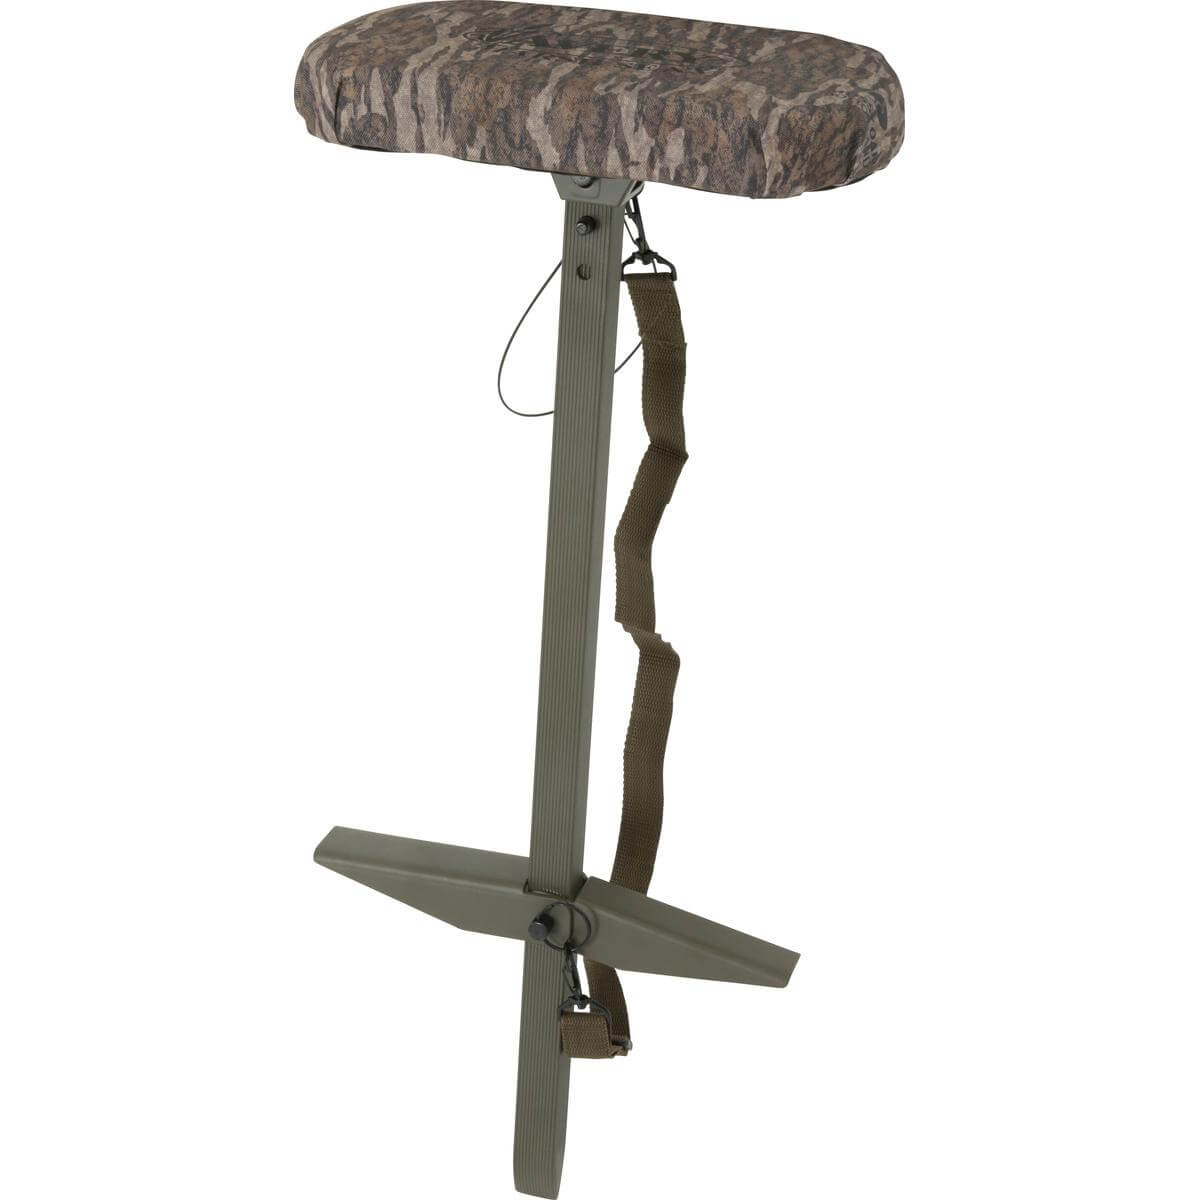 big and tall hunting chairs coleman cooler chair duck stools for the blind field marsh 24 products